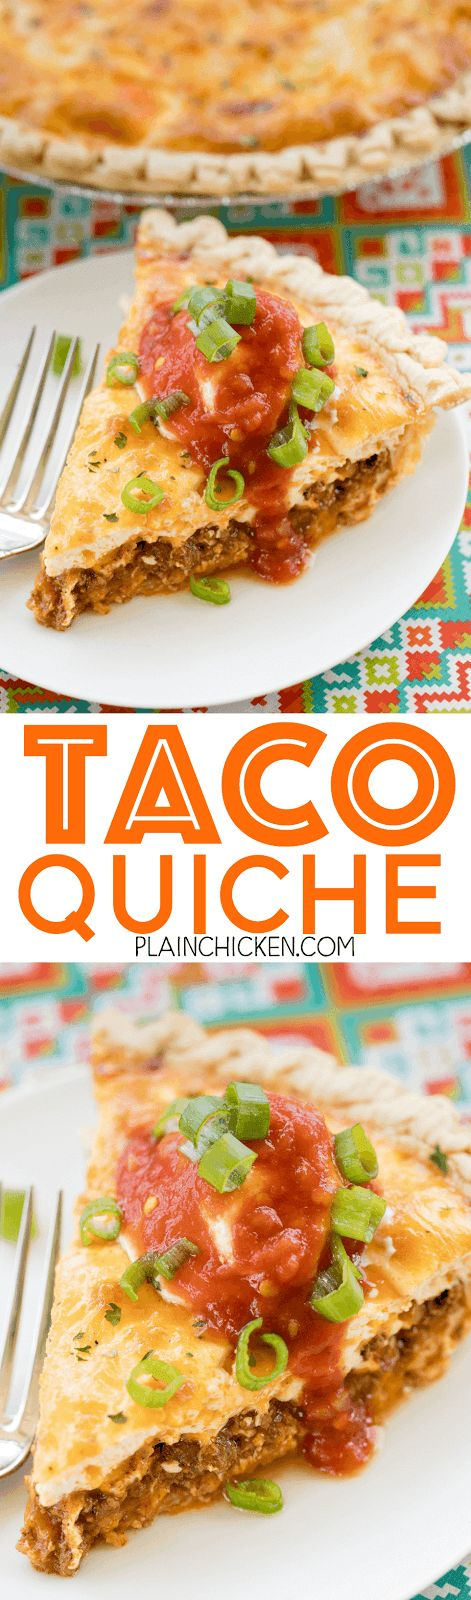 Taco Quiche - Plain Chicken -  this quiche is loaded with taco meat, salsa and cheese. Top with your favorite taco toppings for a fun twist to taco night!